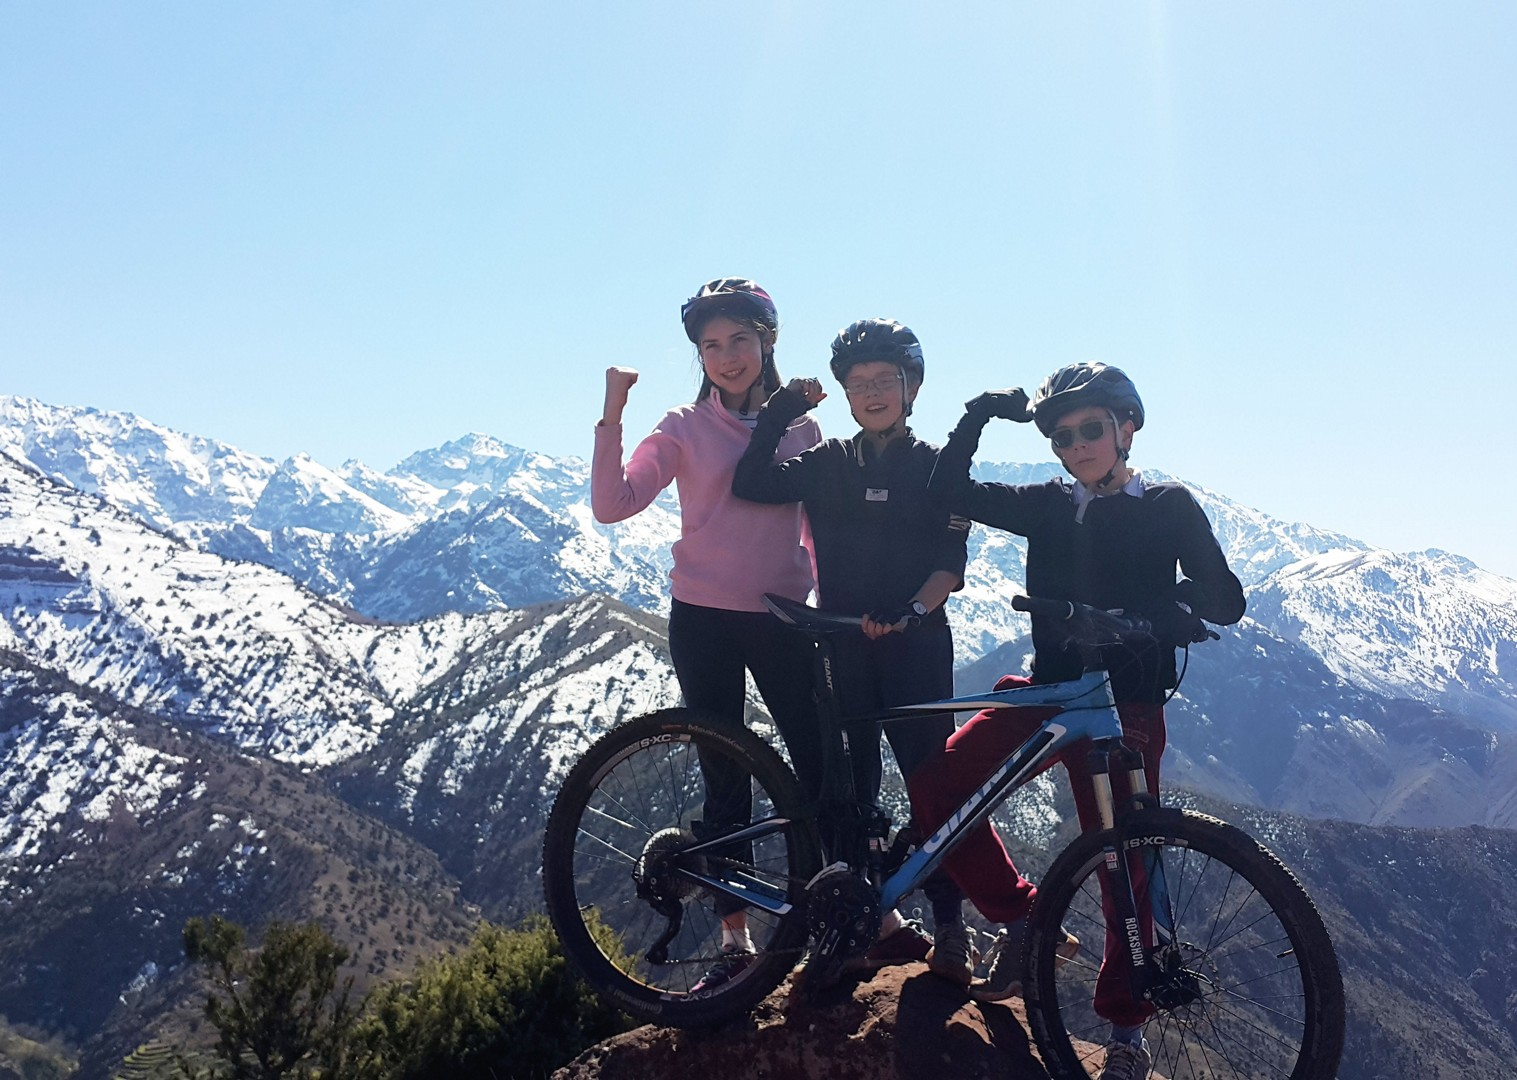 Family-Cycling-Holiday-Morocco-Desert-Mountains-Coast-biking-top-of-the-mountain - Morocco - Desert, Mountains and Coast - Family Cycling